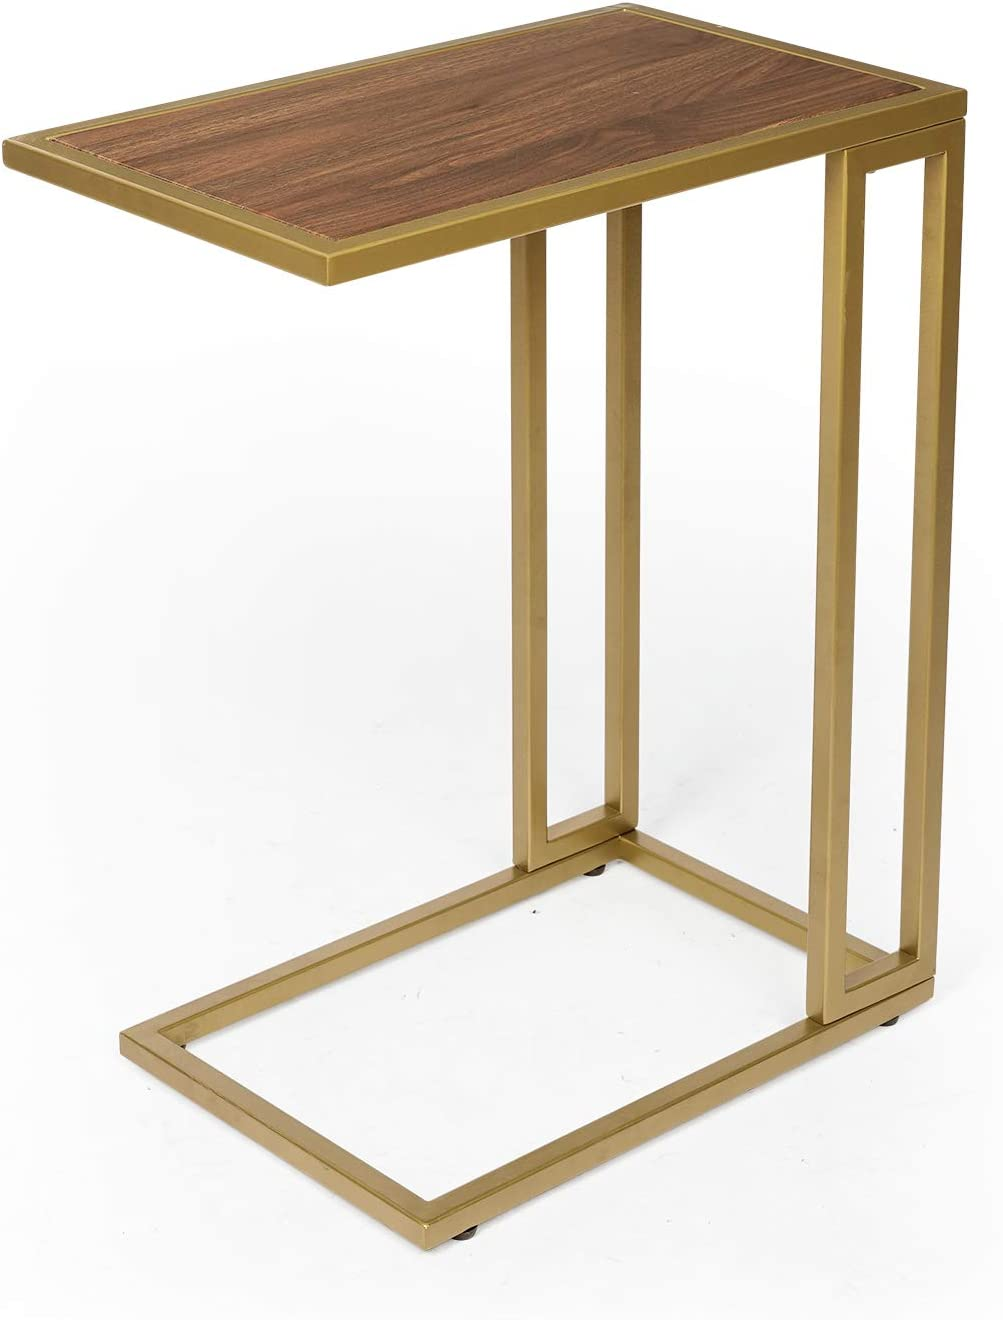 KS002A Wood Finish//Brass Gold Metal Frame Sofa Couch Table for Small Space C Table Side End Tables-Accent TV Tray